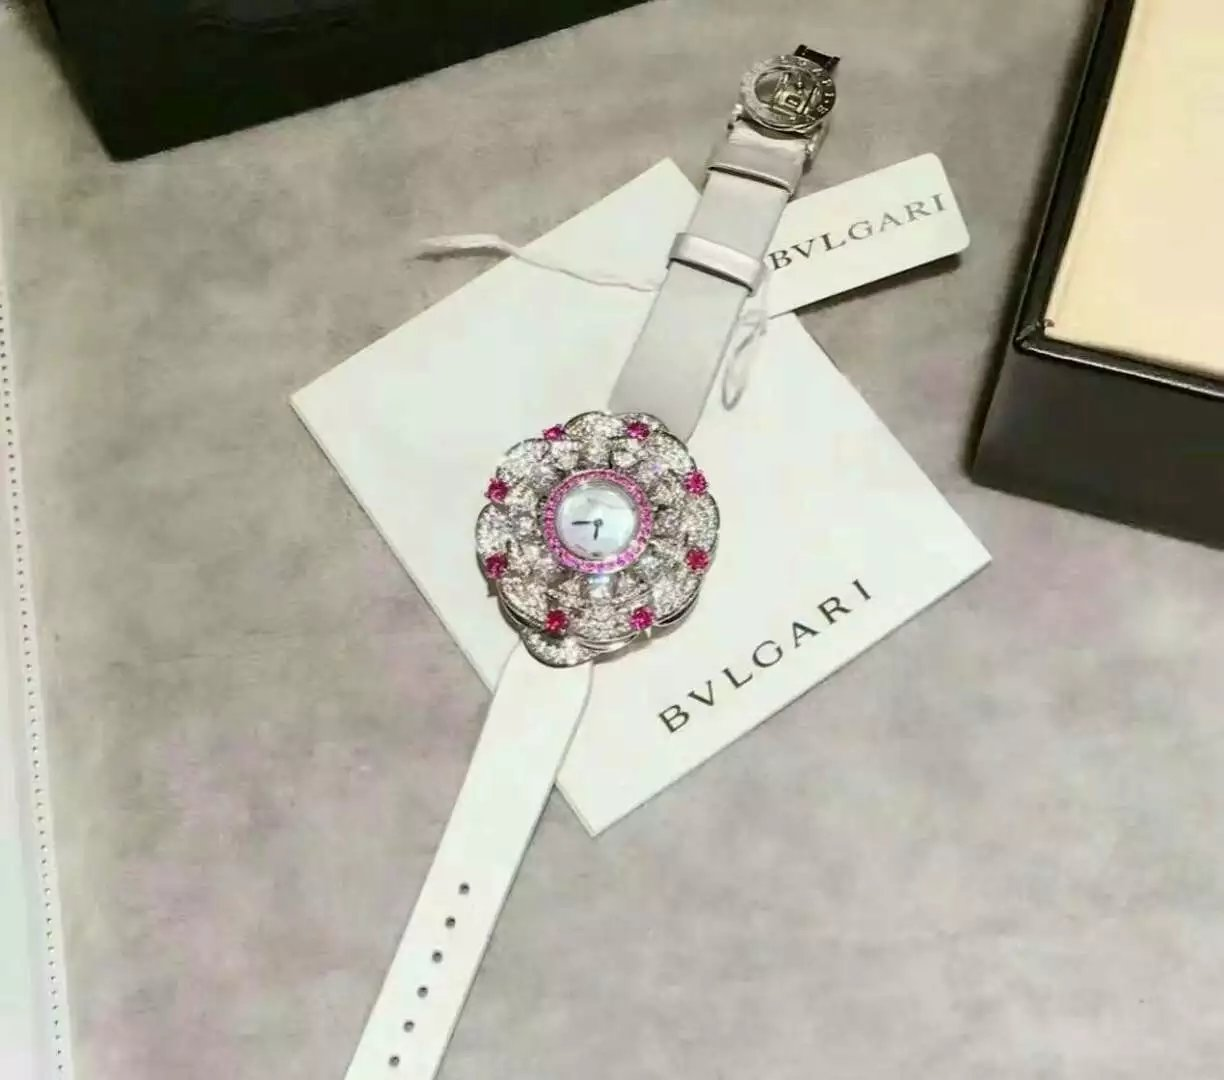 Bvlgari Watch 181